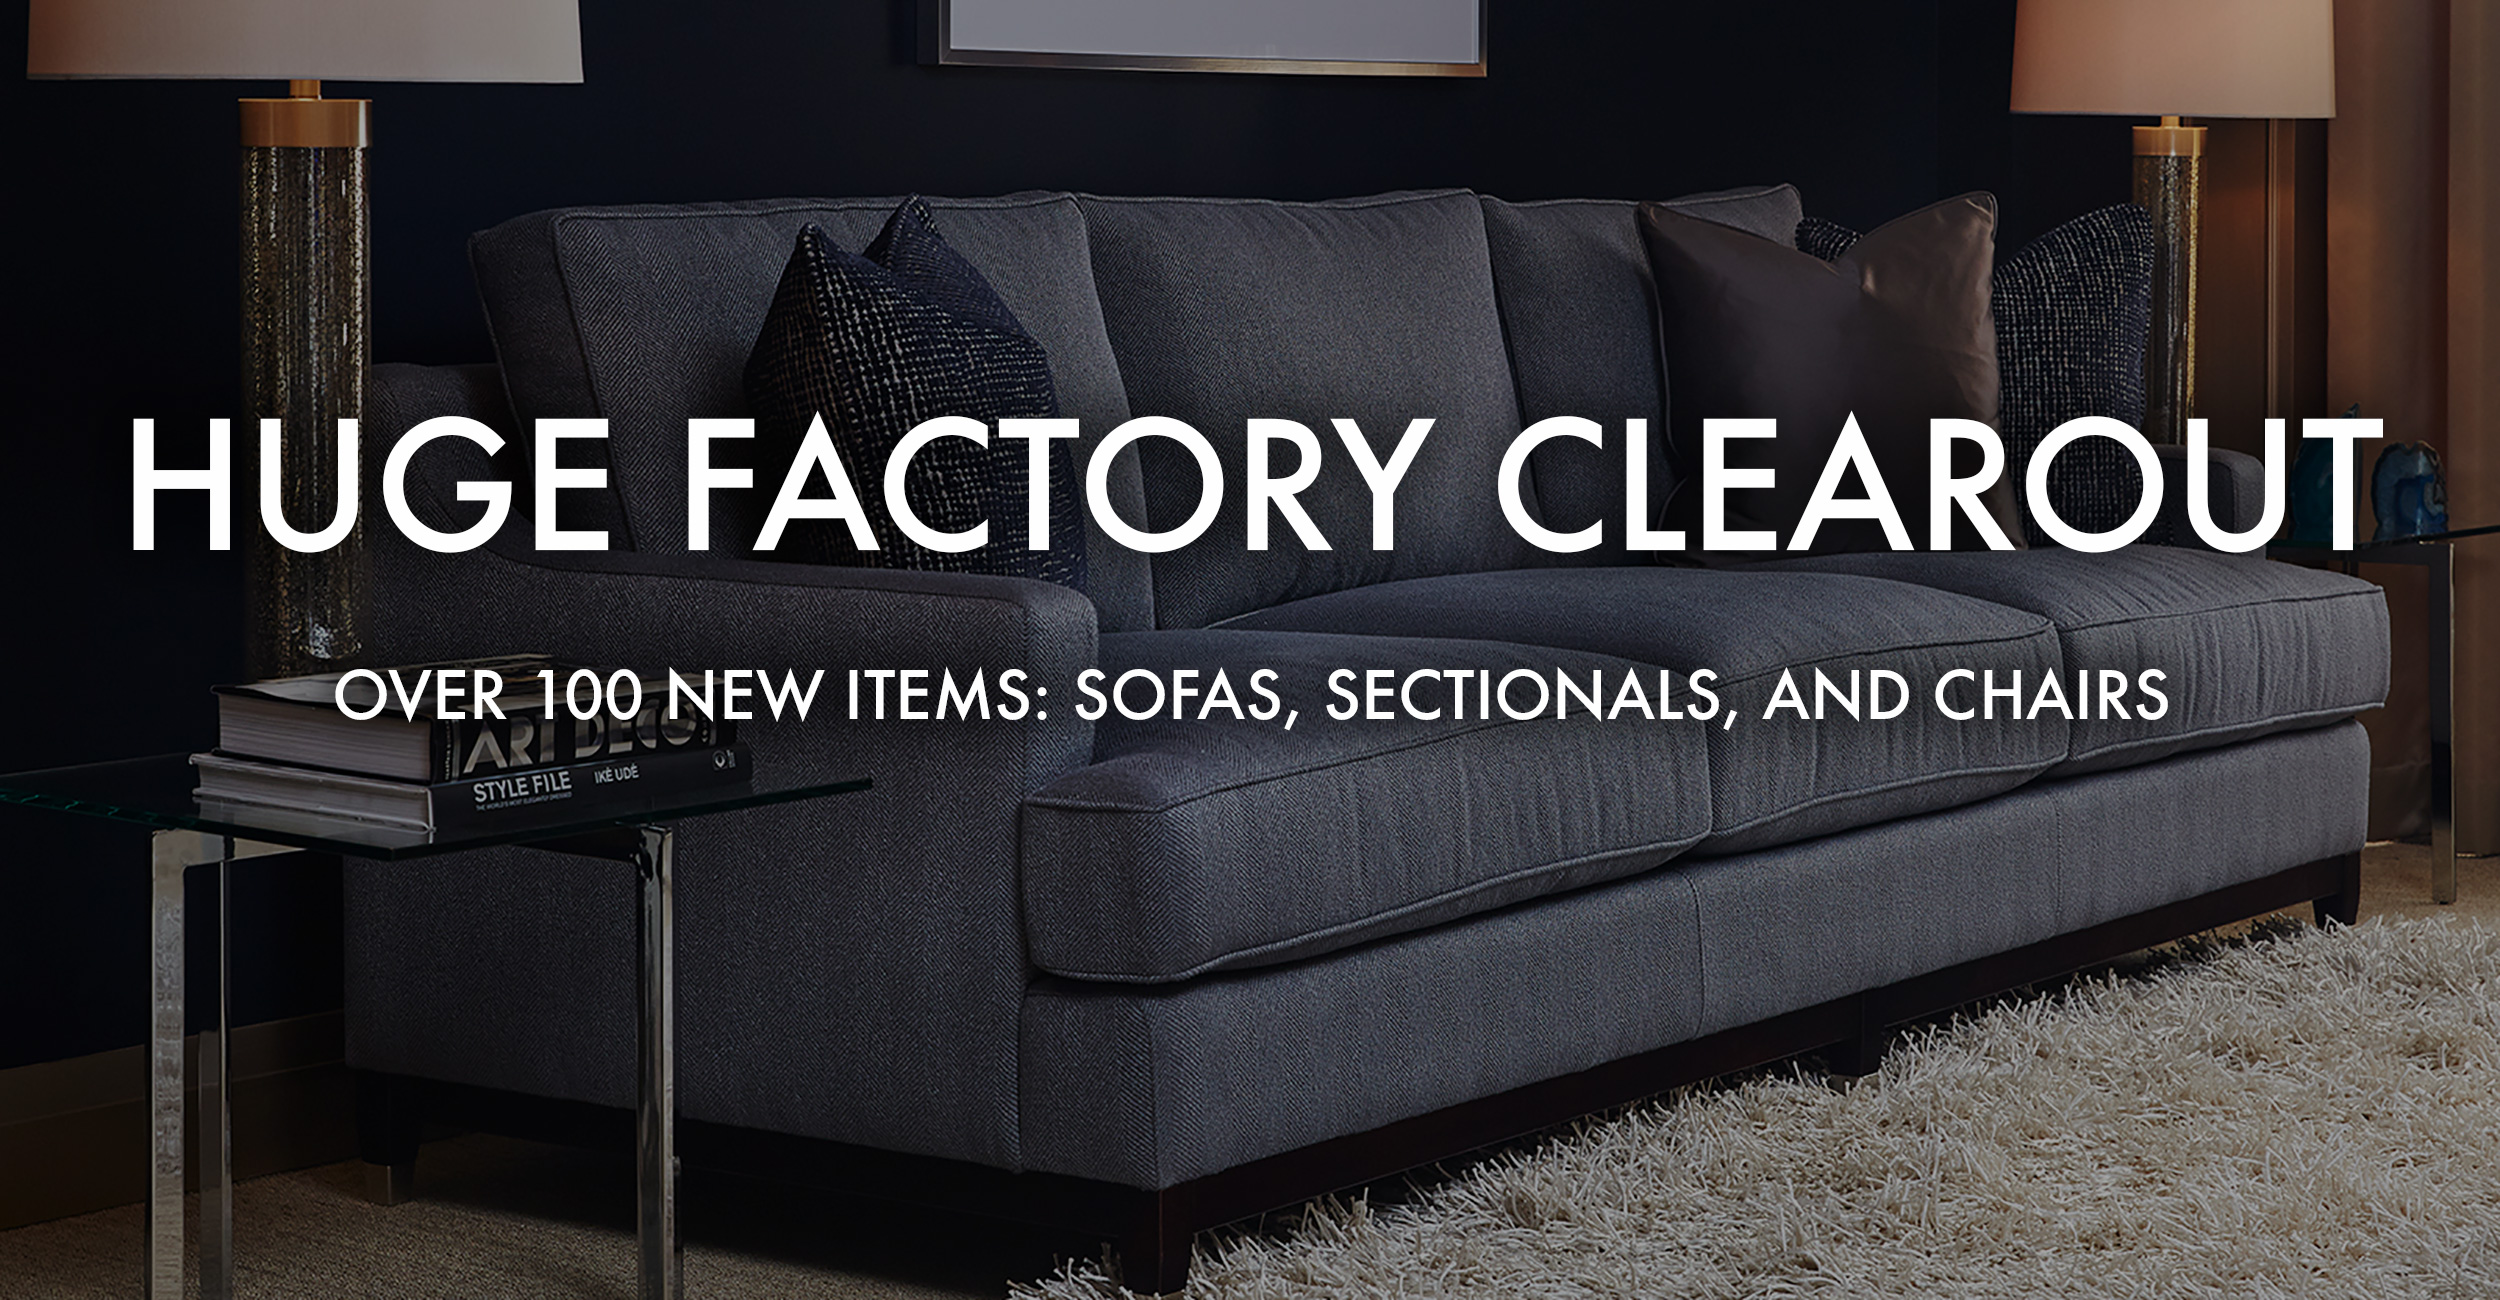 Ottawas Quality Furniture Store Ormes Furniture